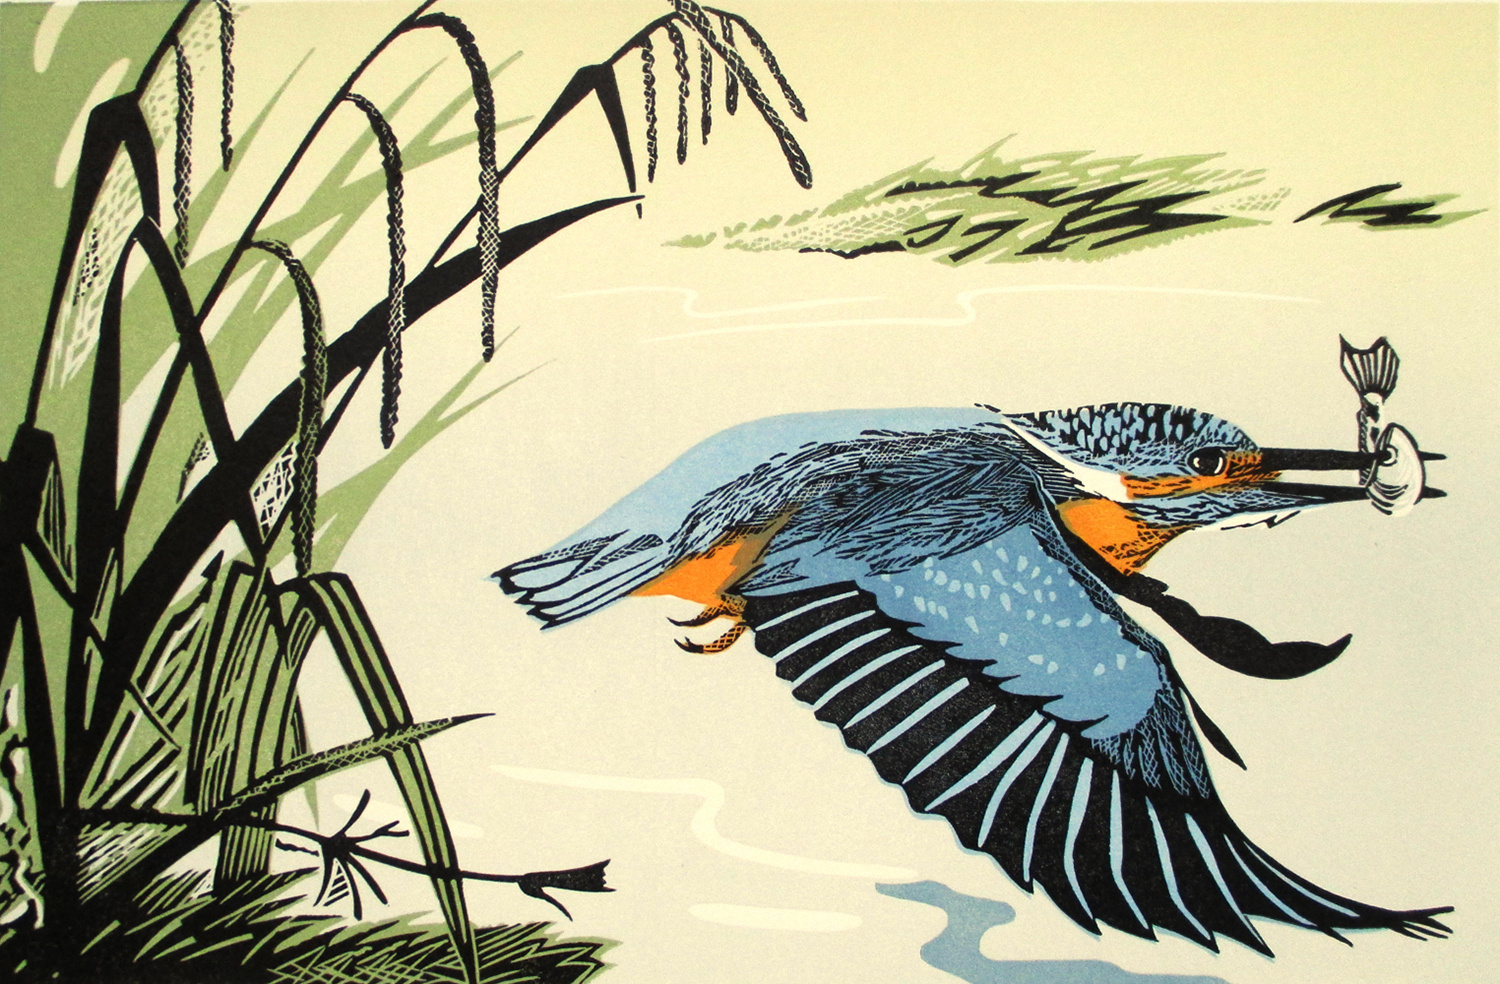 Kingfisher by Pam Grimmond